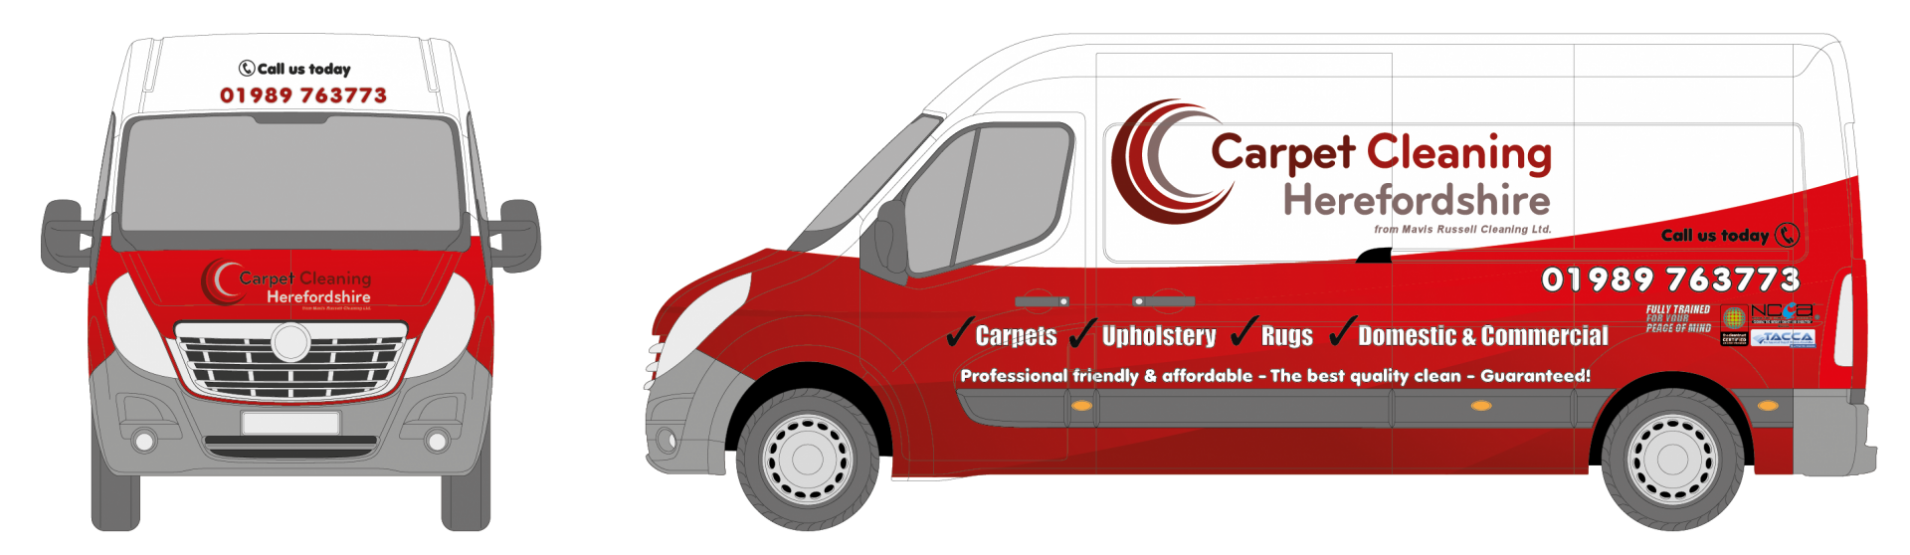 cch van design7 - Vehicle wrap design for facilities maintenance company